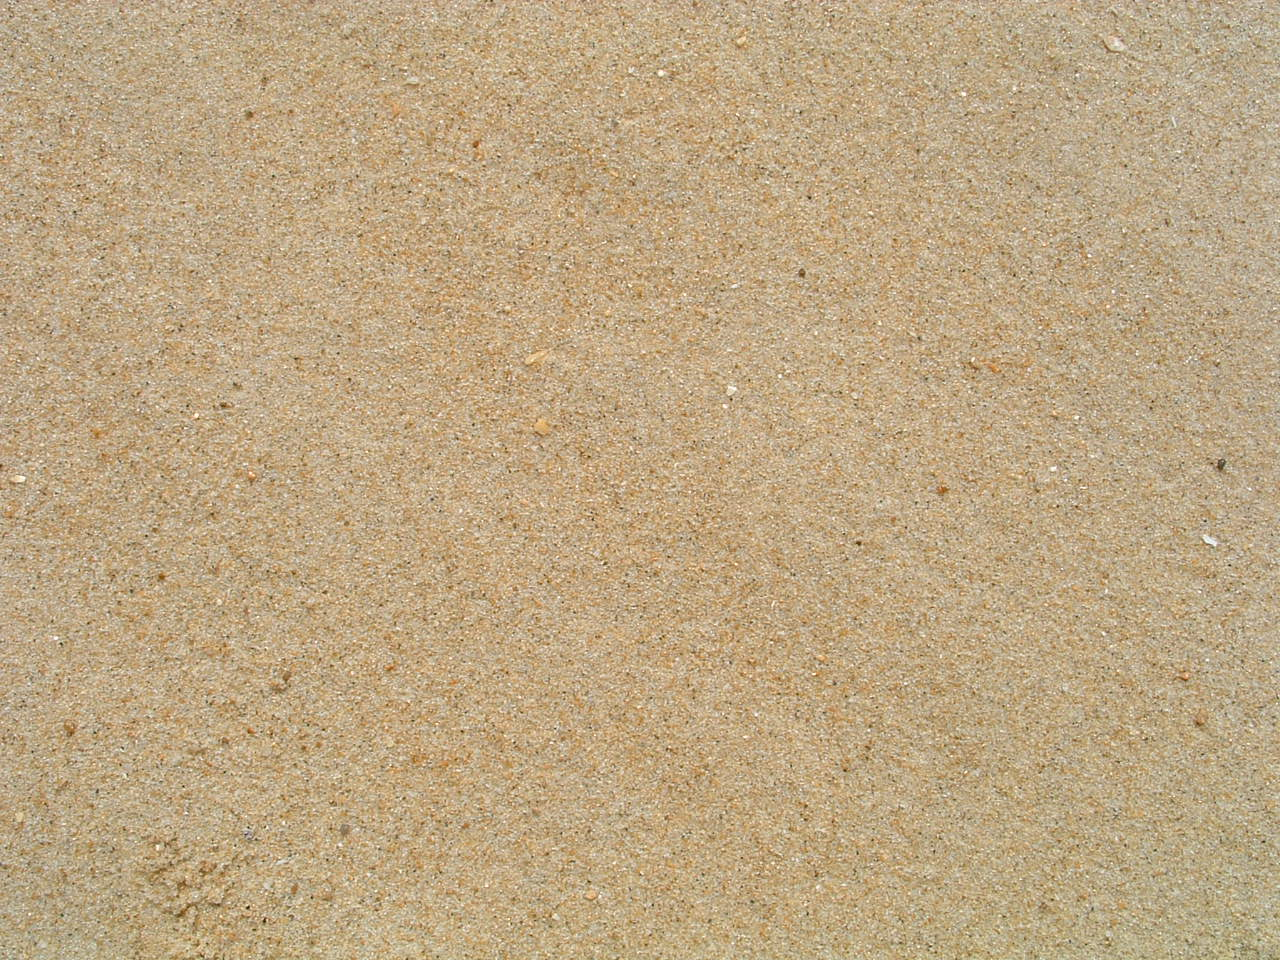 Free Sand, Download Free Clip Art, Free Clip Art on Clipart.